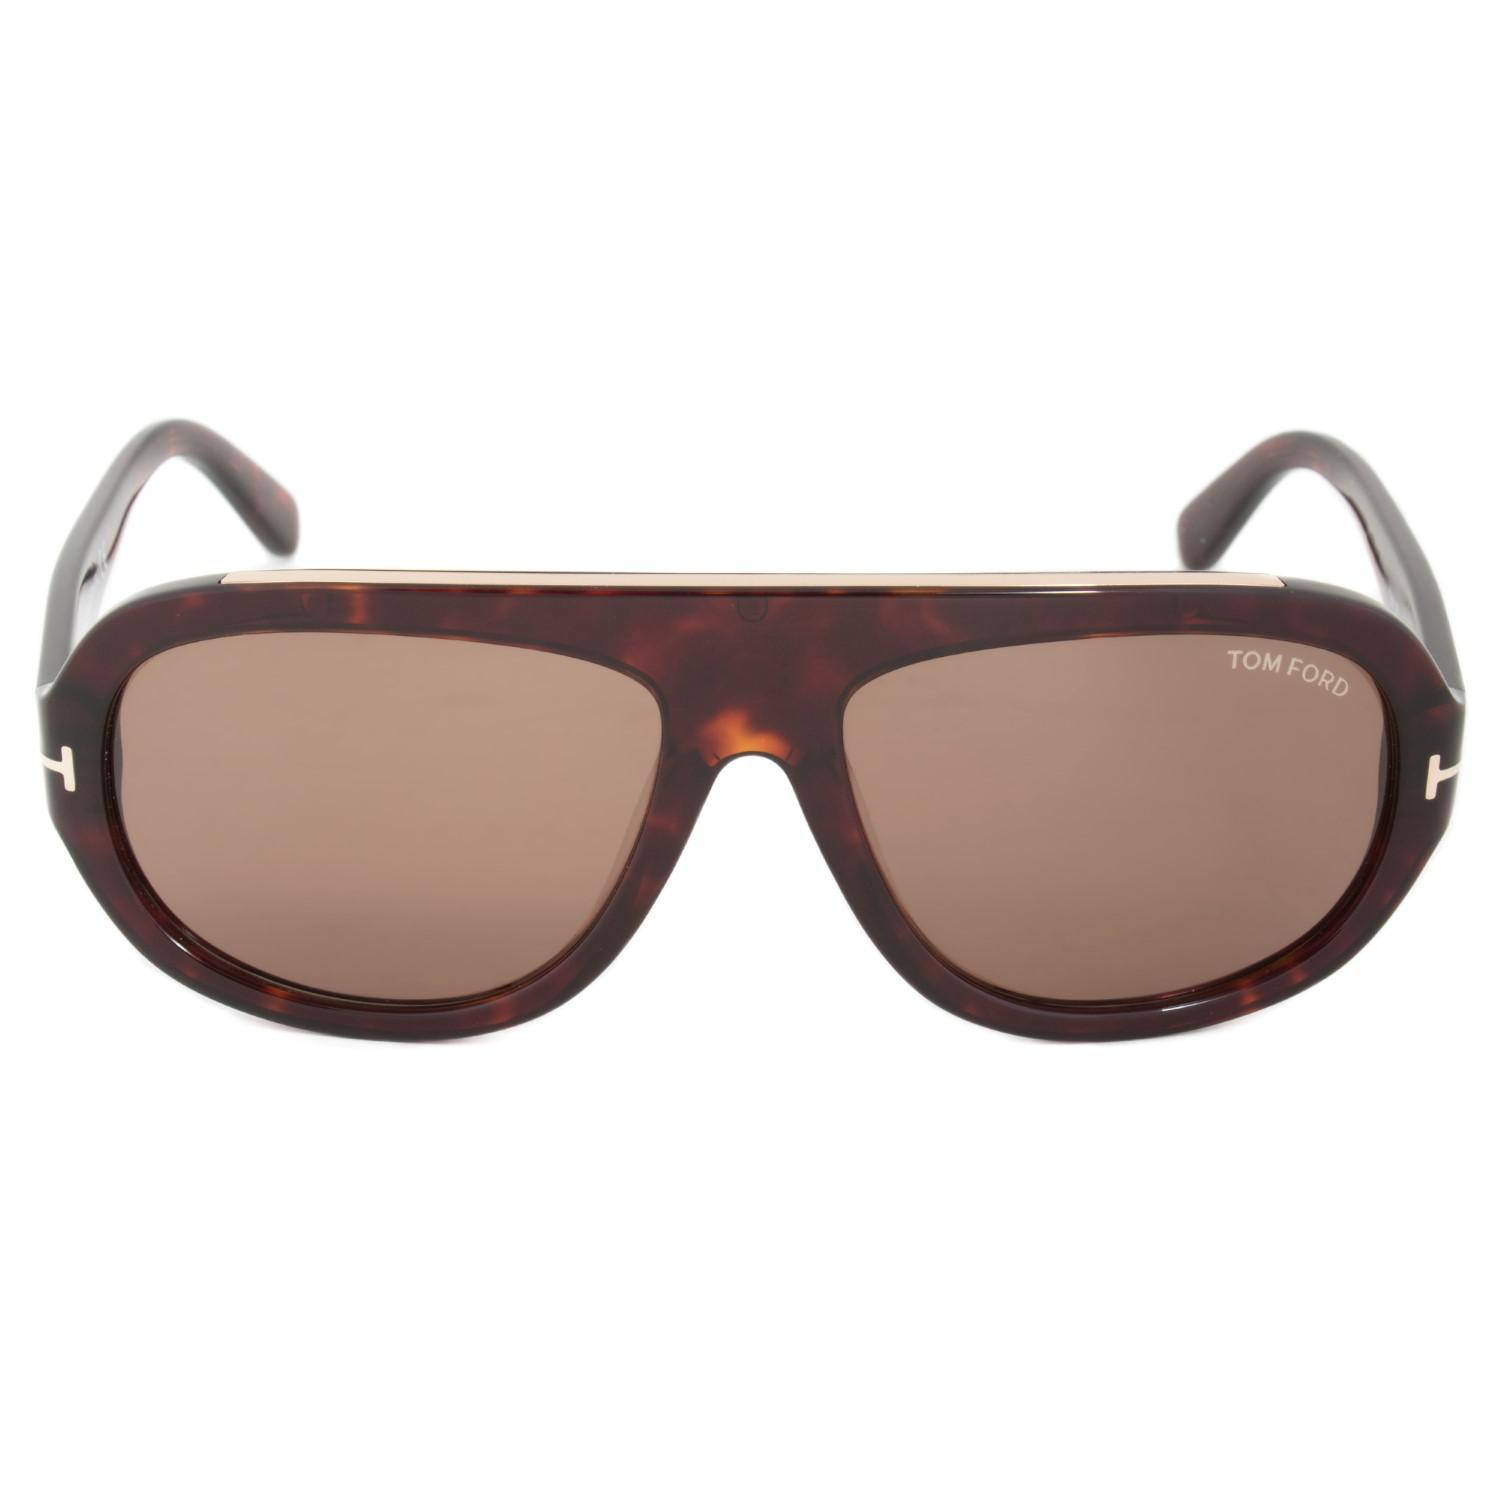 5fe3f73330 Lyst - Tom Ford Ft0444 Hugo Sunglasses  brown in Brown - Save 29%